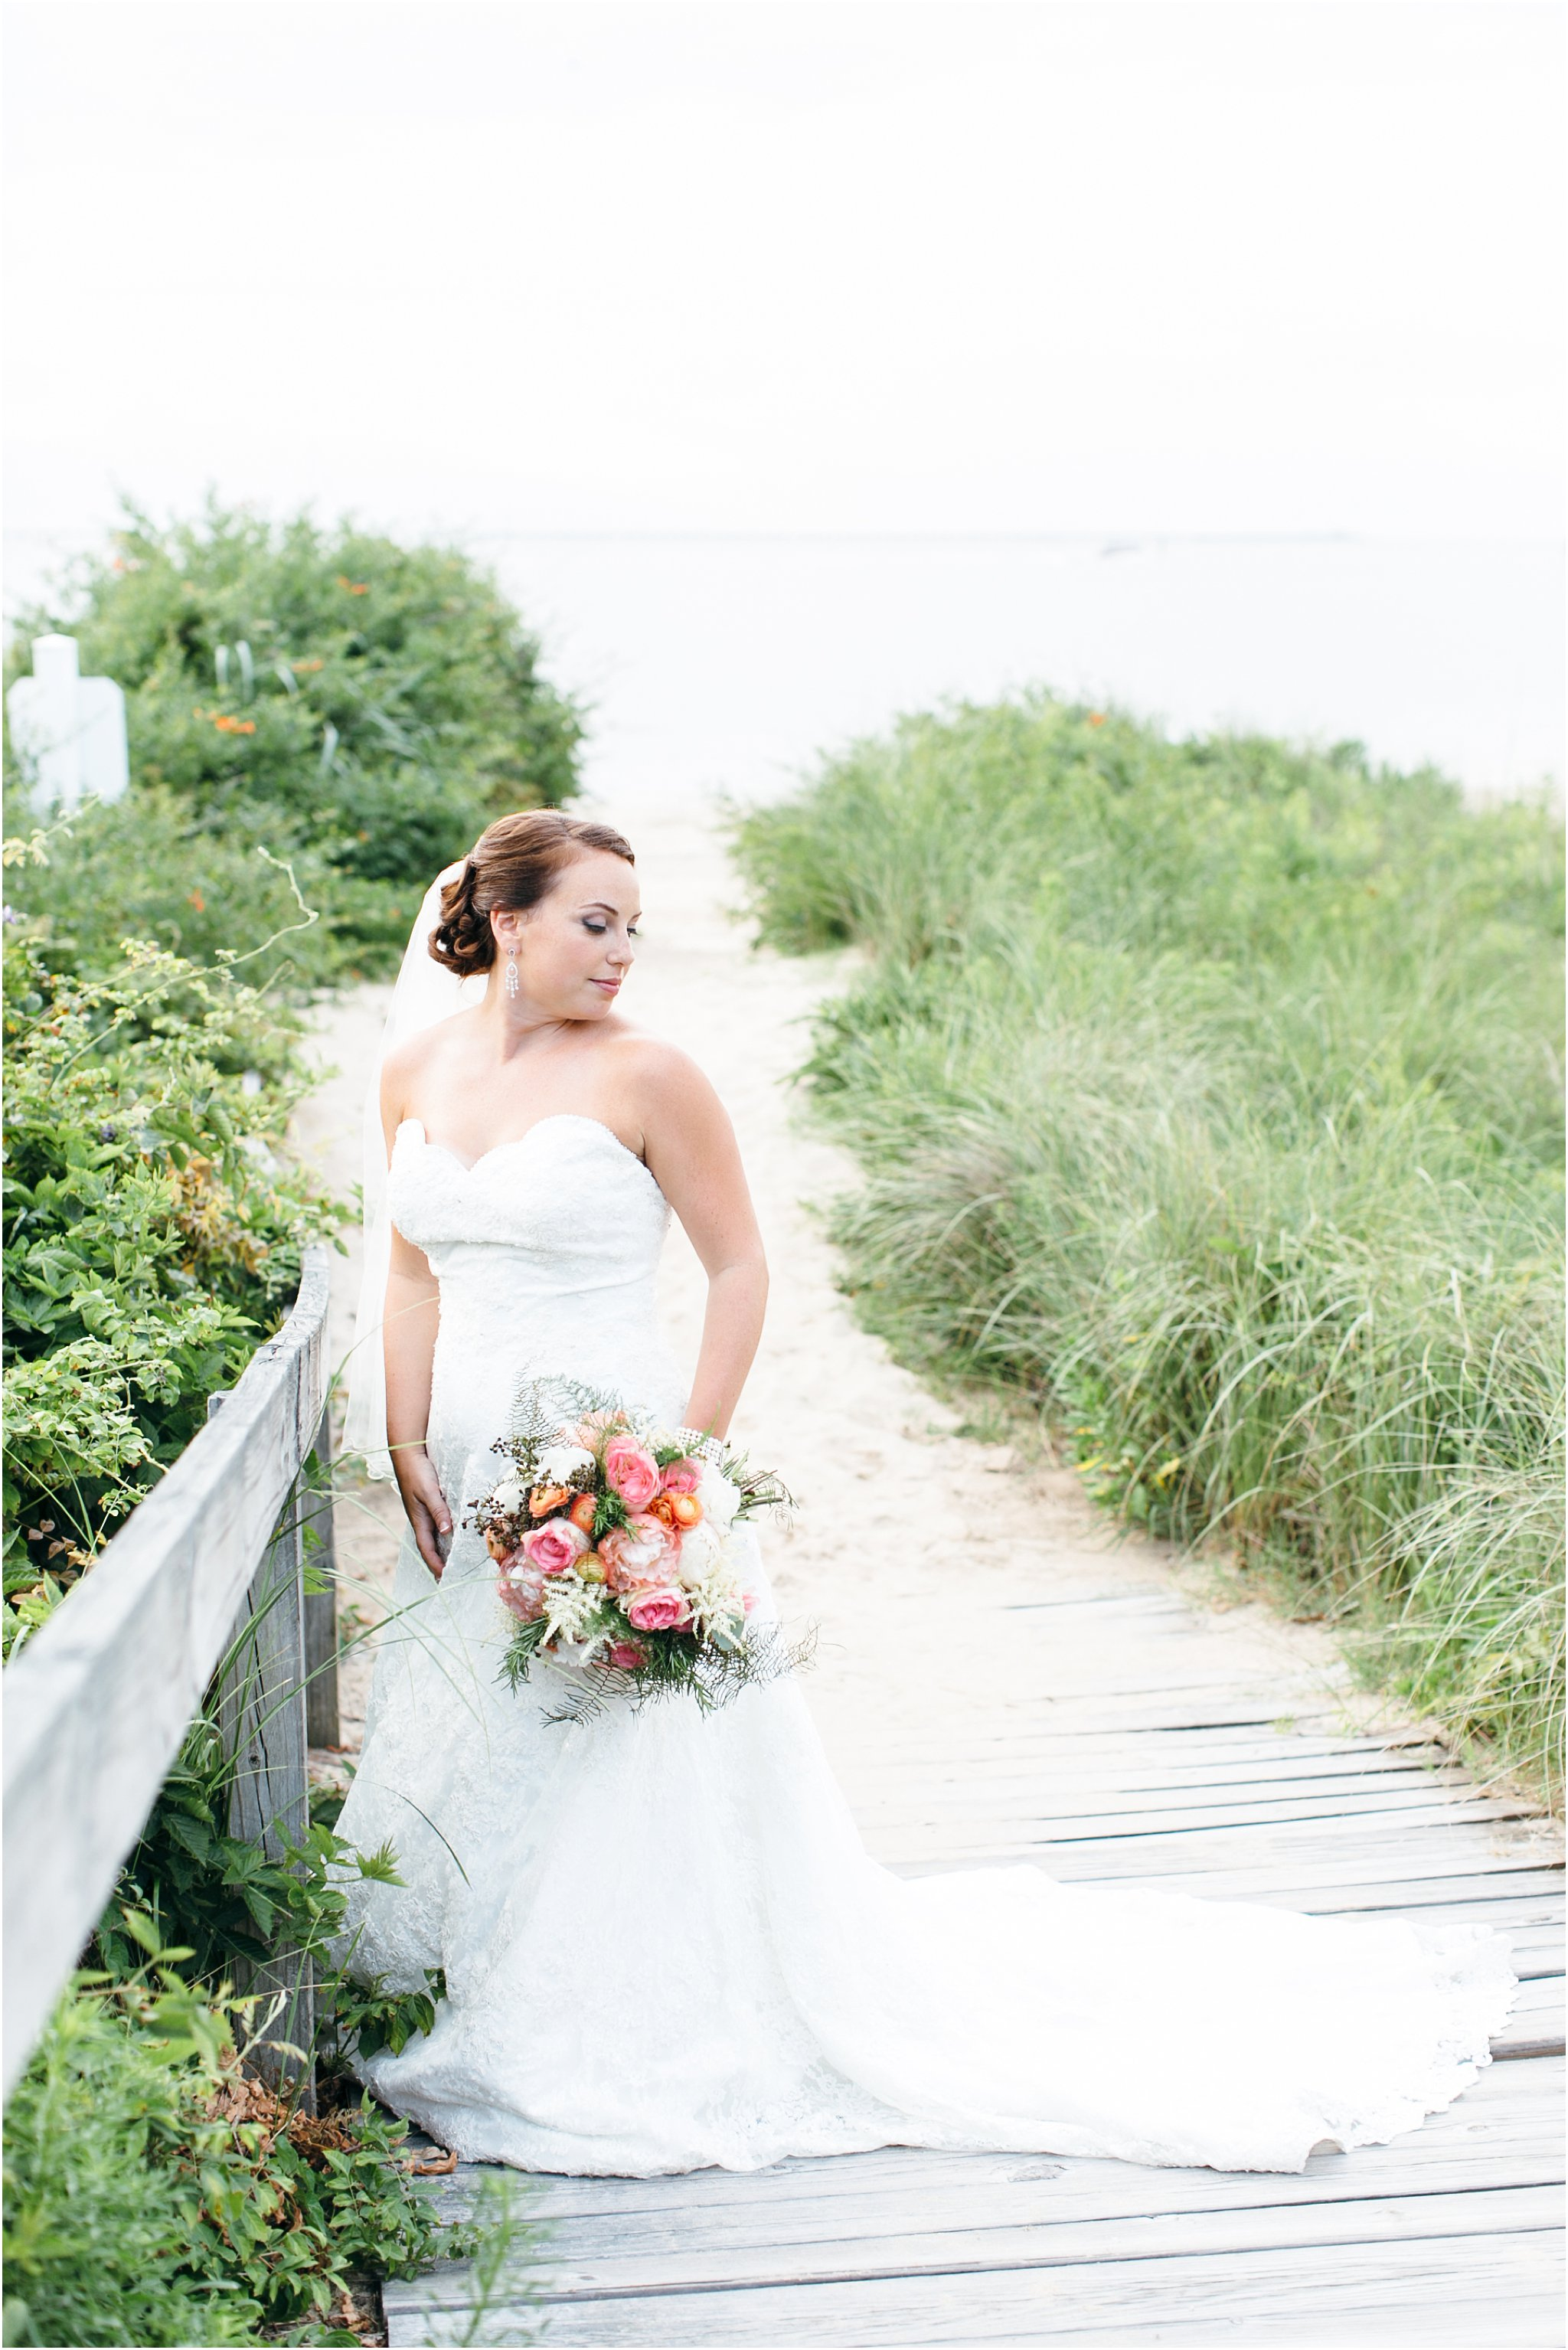 jessica_ryan_photography_wedding_photography_virginiabeach_virginia_candid_authentic_wedding_portraits_marina_shores_yacht_club_chesapeake_bay_1899